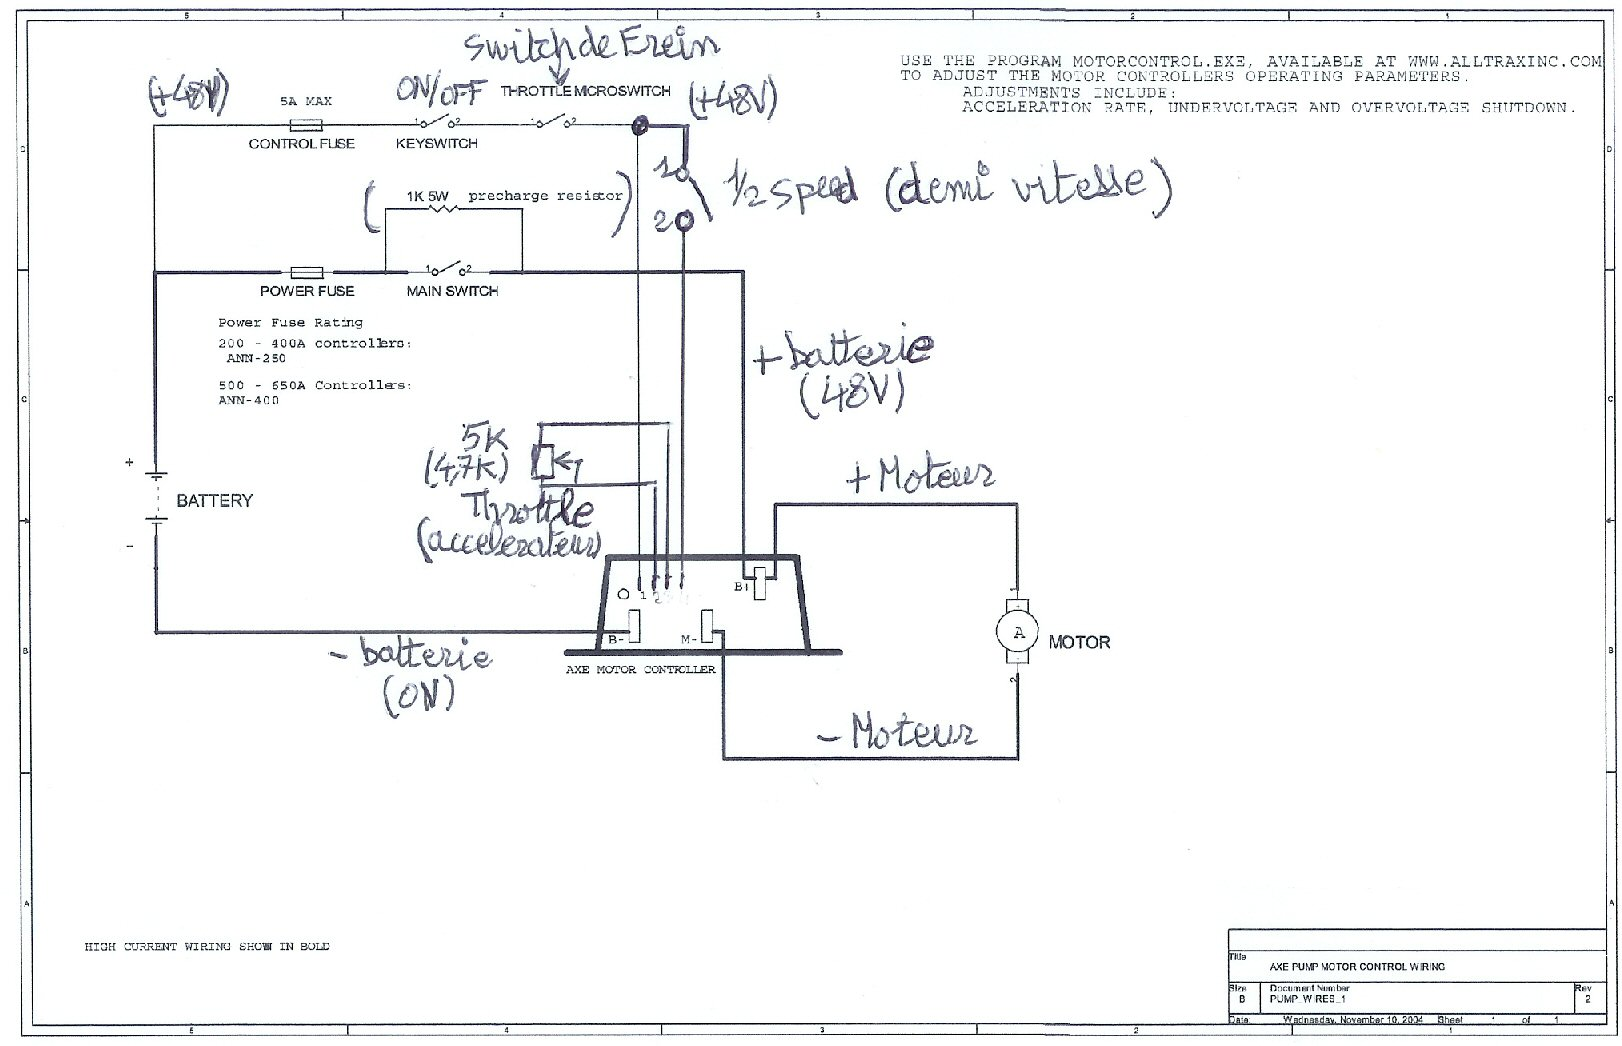 Controller Alltrax Xct Wiring Diagram. . Wiring Diagram on